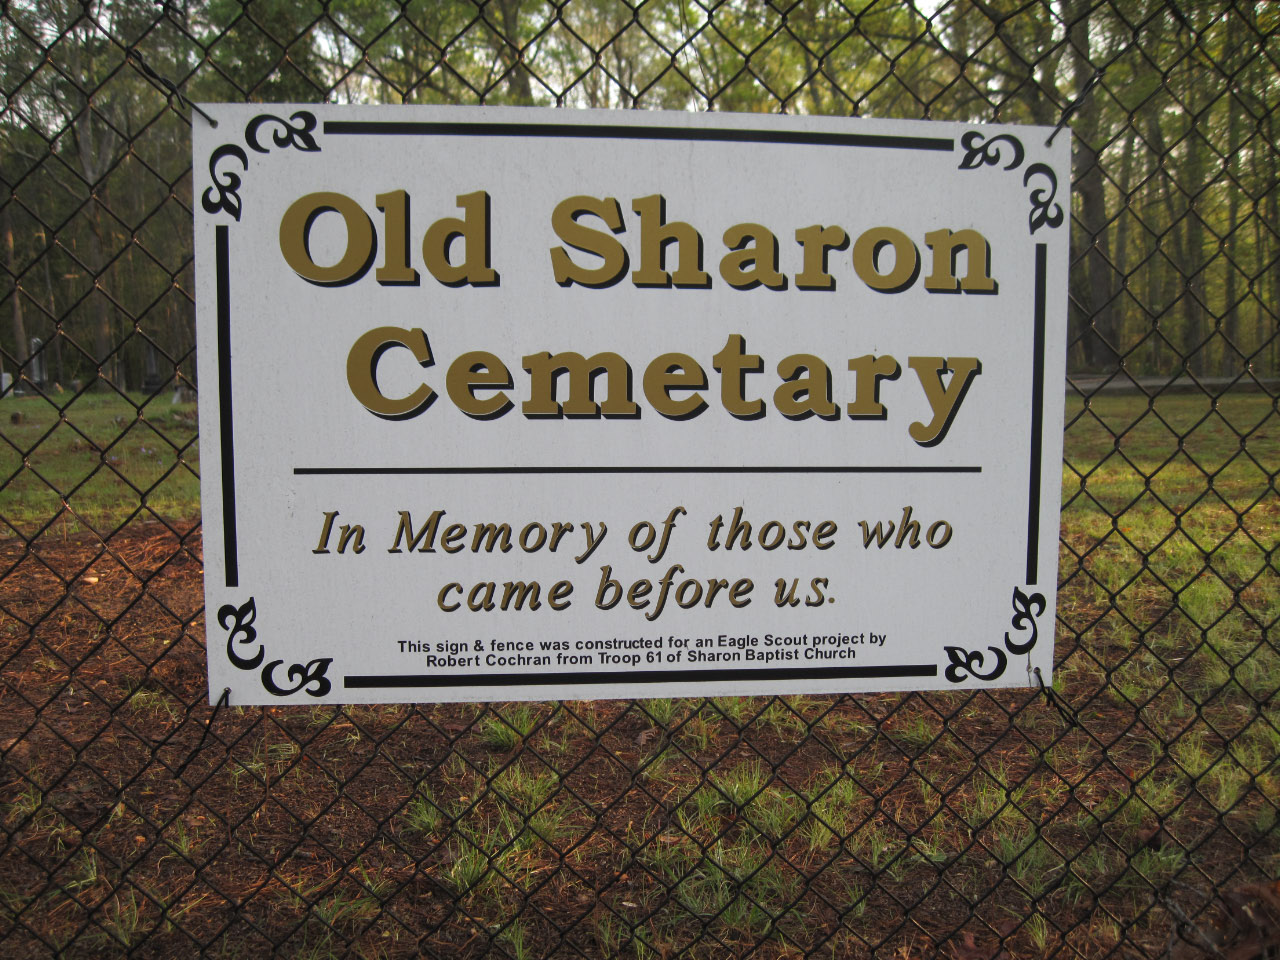 Old Sharon Cemetery